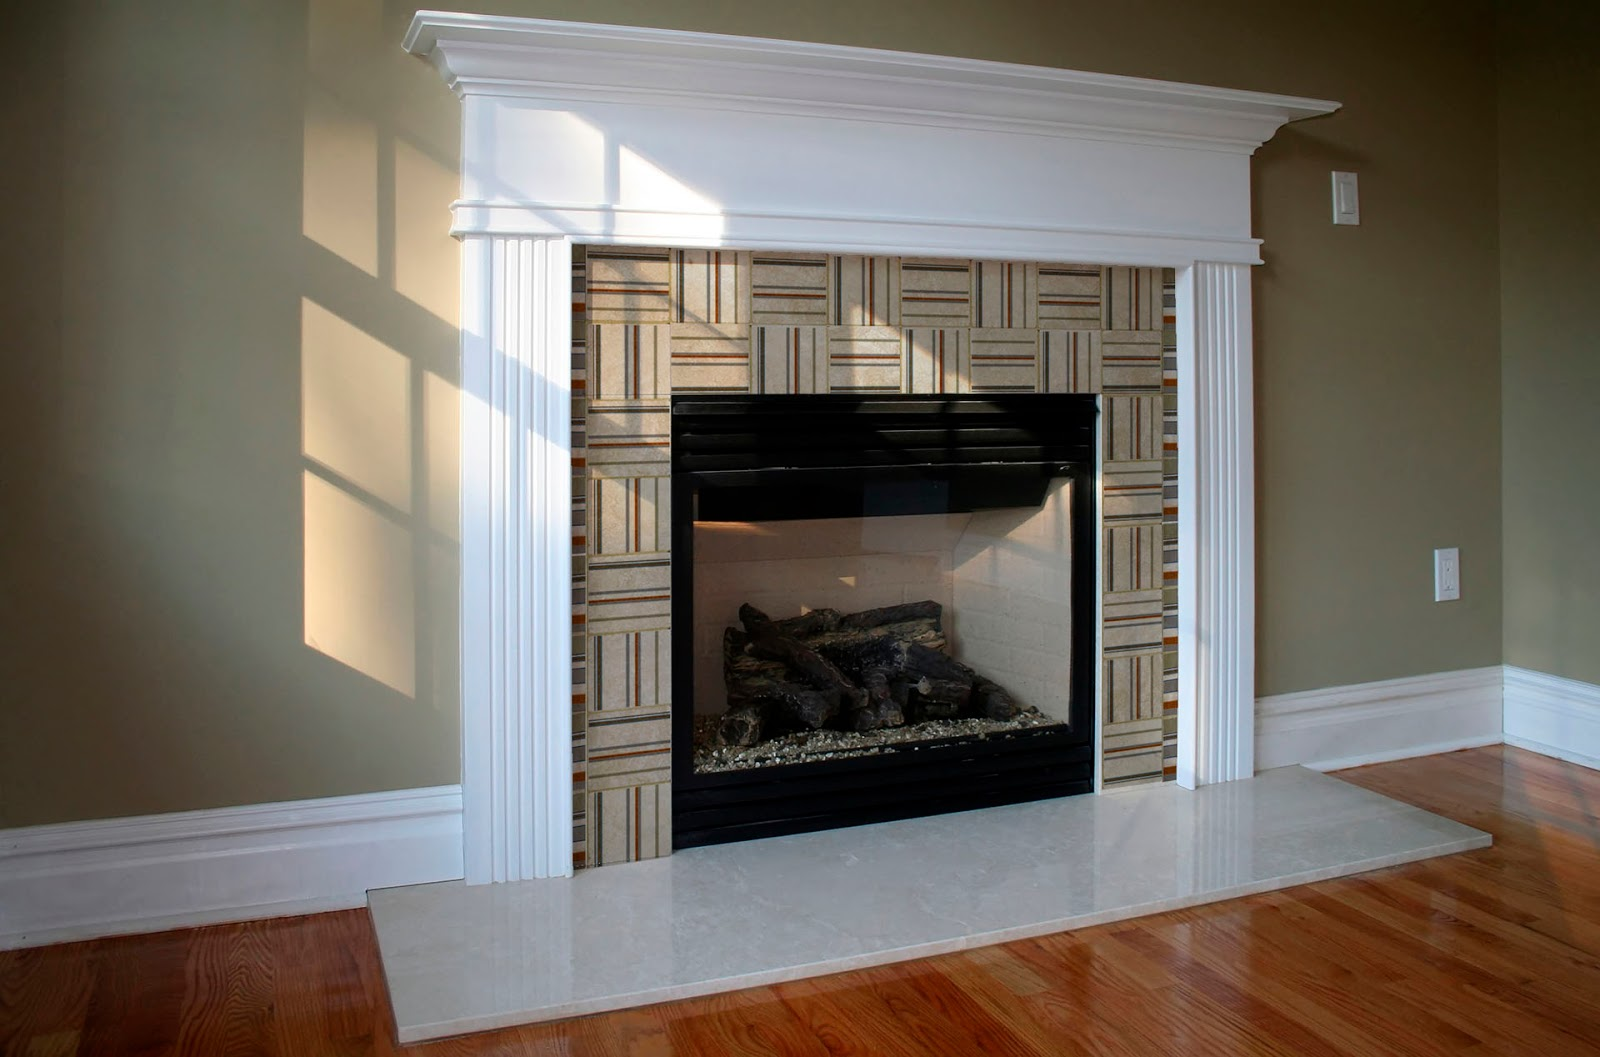 Fireplace Design Ideas Besides Contemporary Tile Fireplace Designs